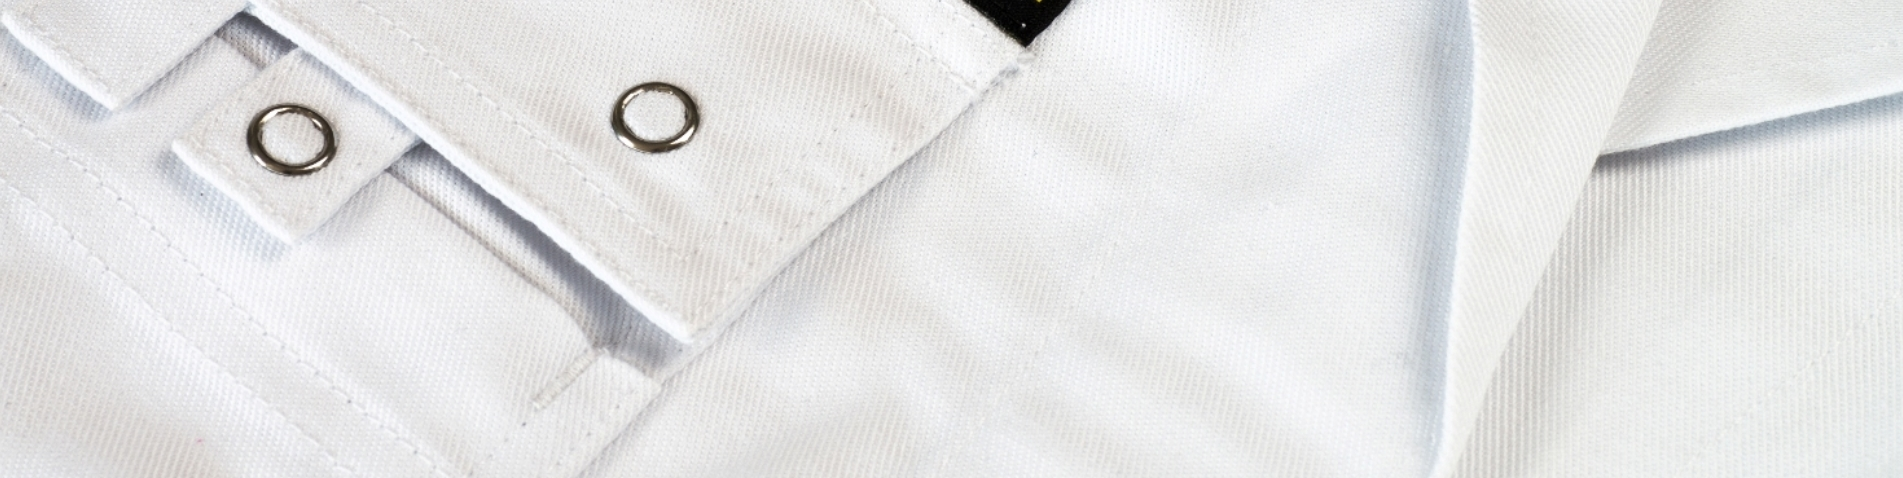 workwear4all-be -  Stofjas banner breed